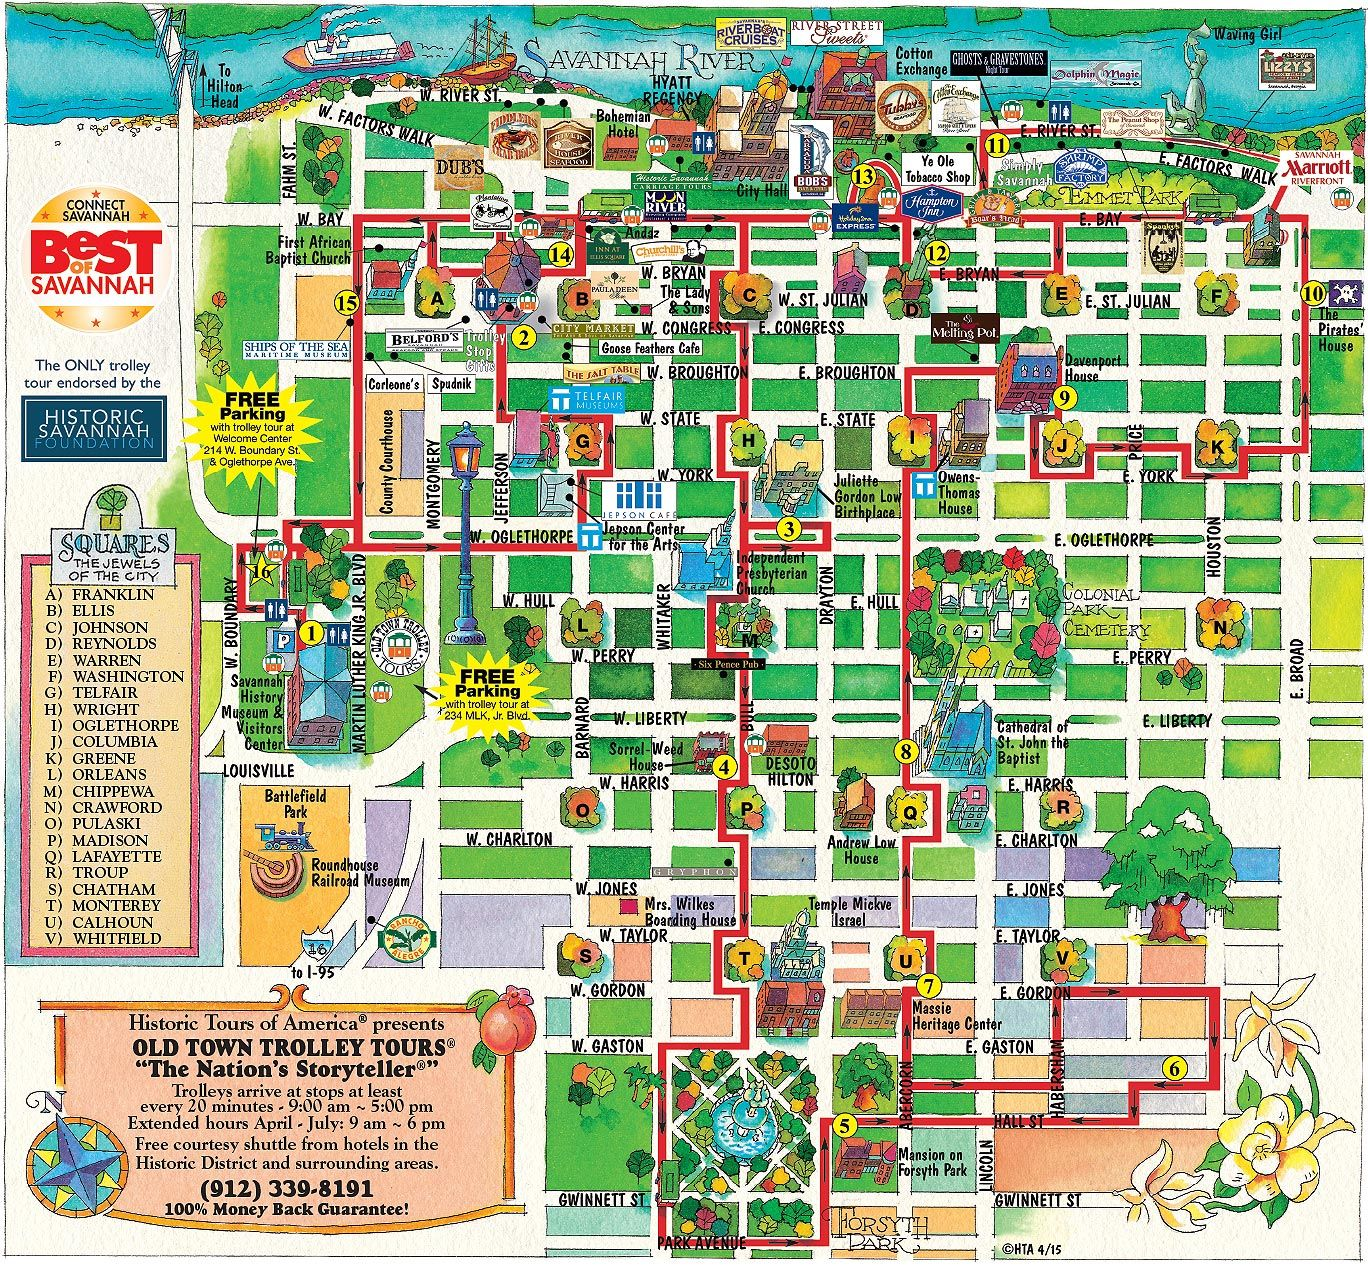 Old Town Trolley Map Old Town Trolley Tours® of Savannah route map. This is a great